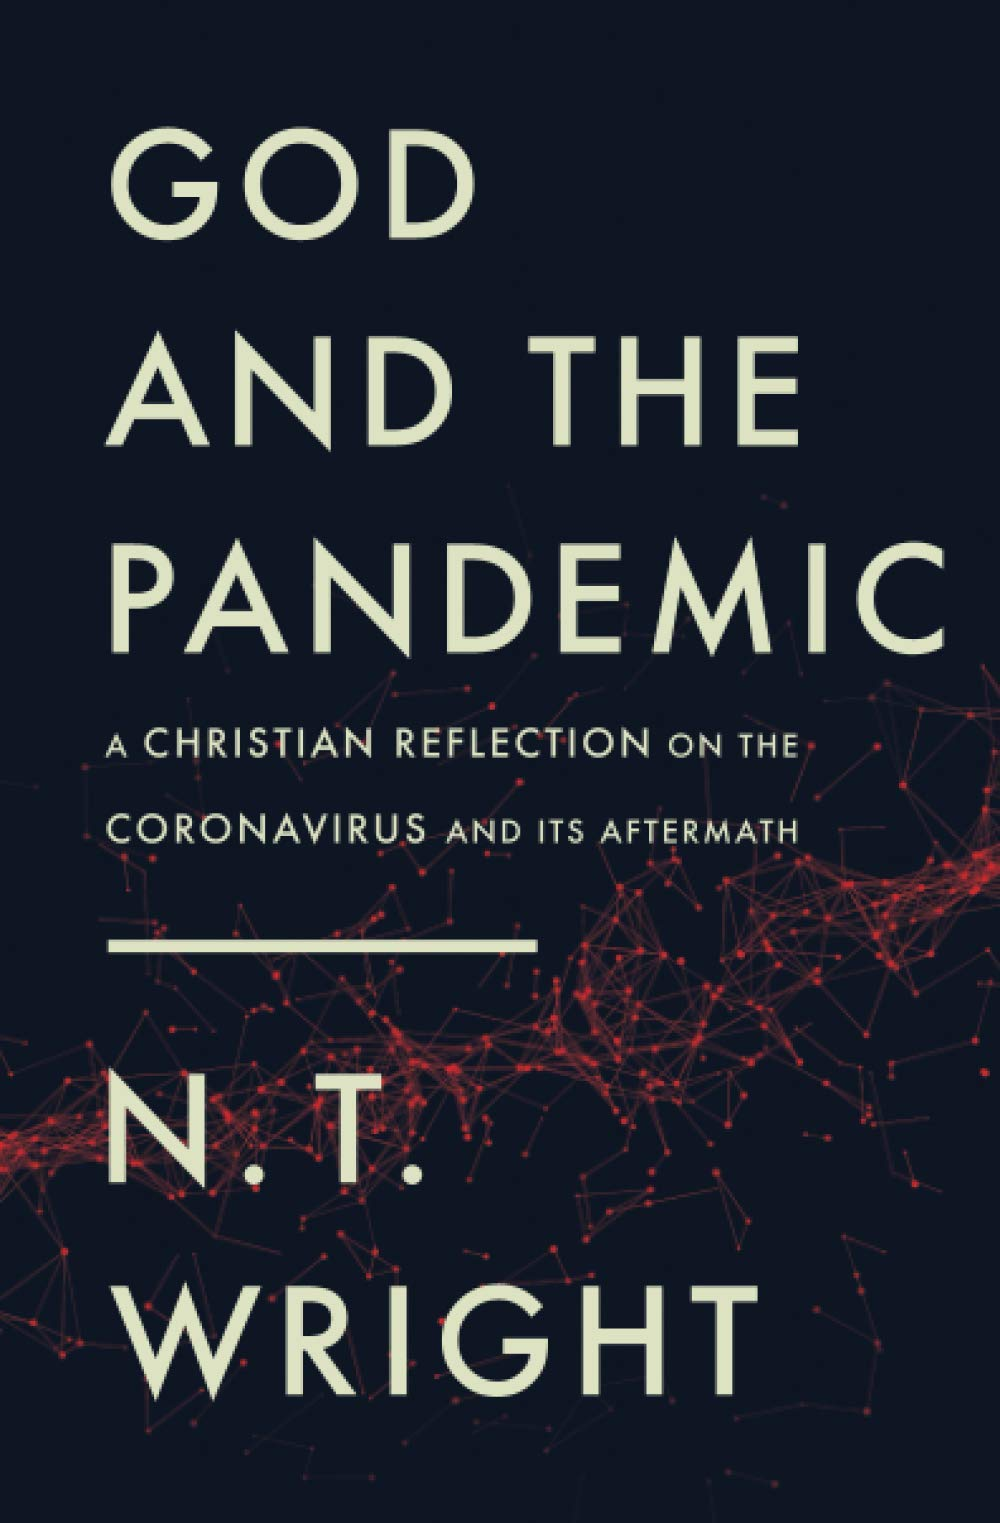 God and the Pandemic: A Christian Reflection at the Coronavirus and Its Aftermath